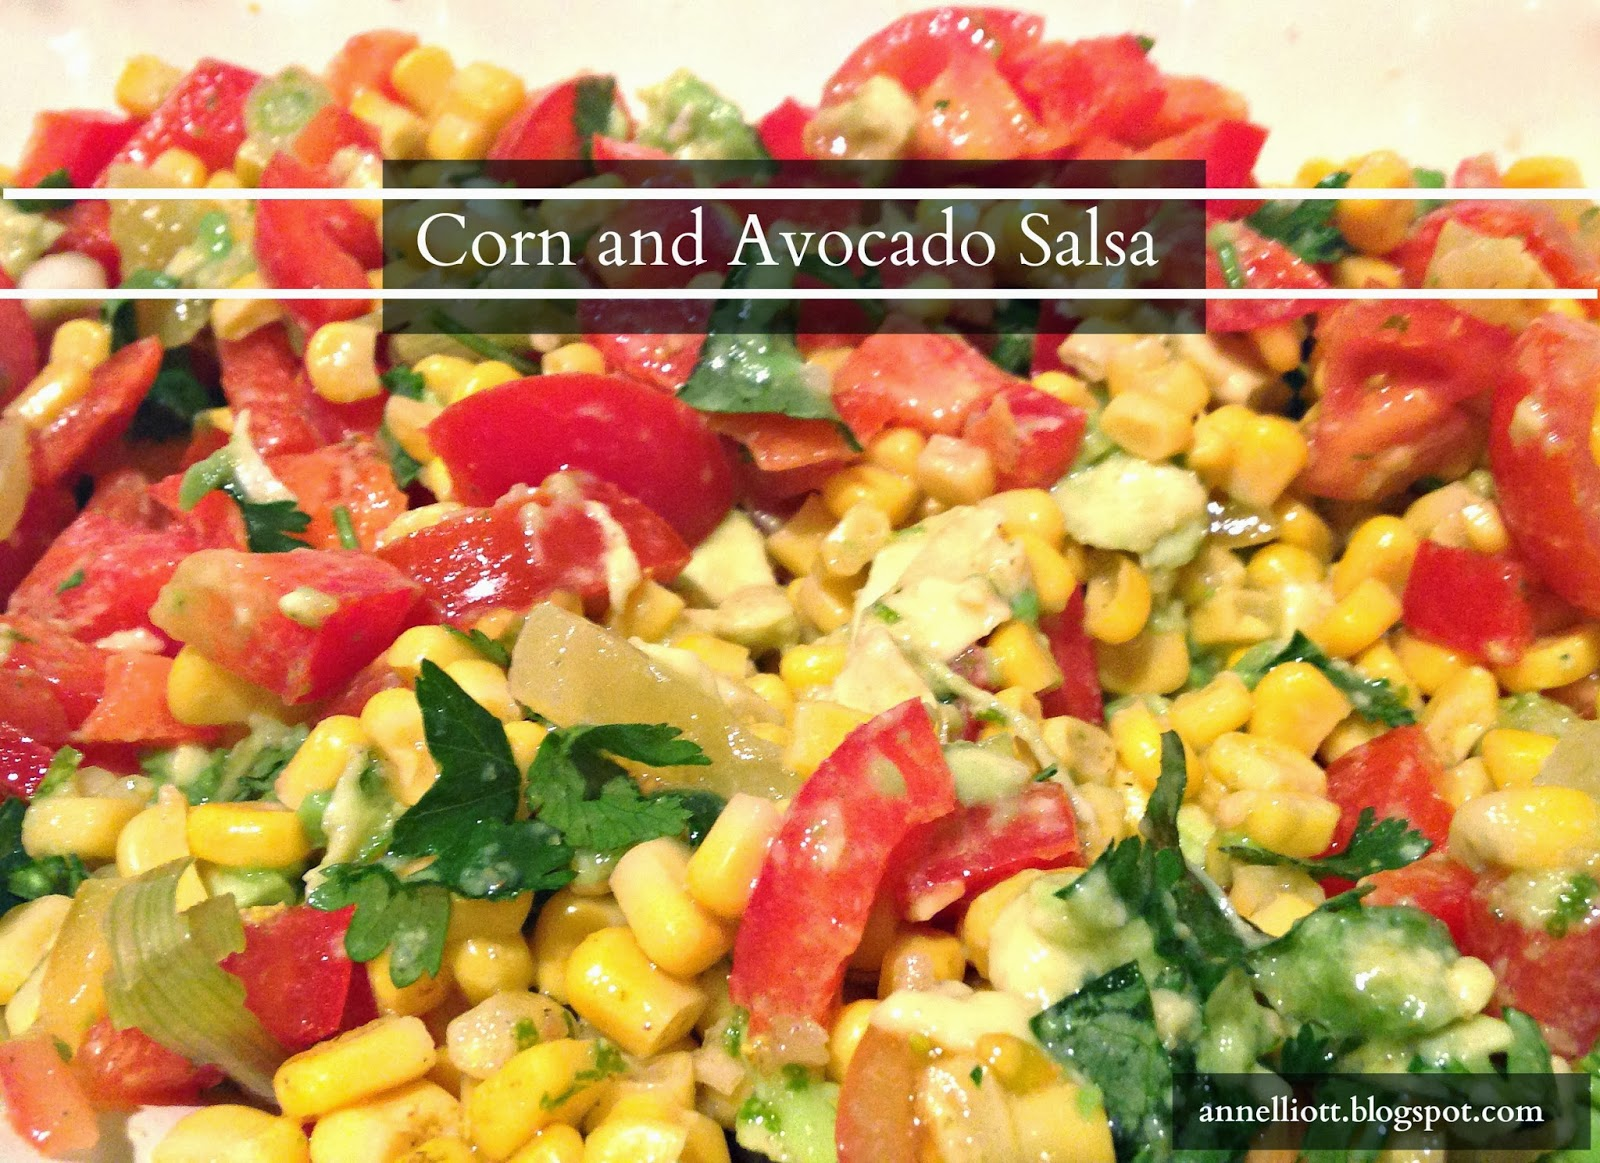 ann elliott: Recipe: Corn and Avocado Salsa